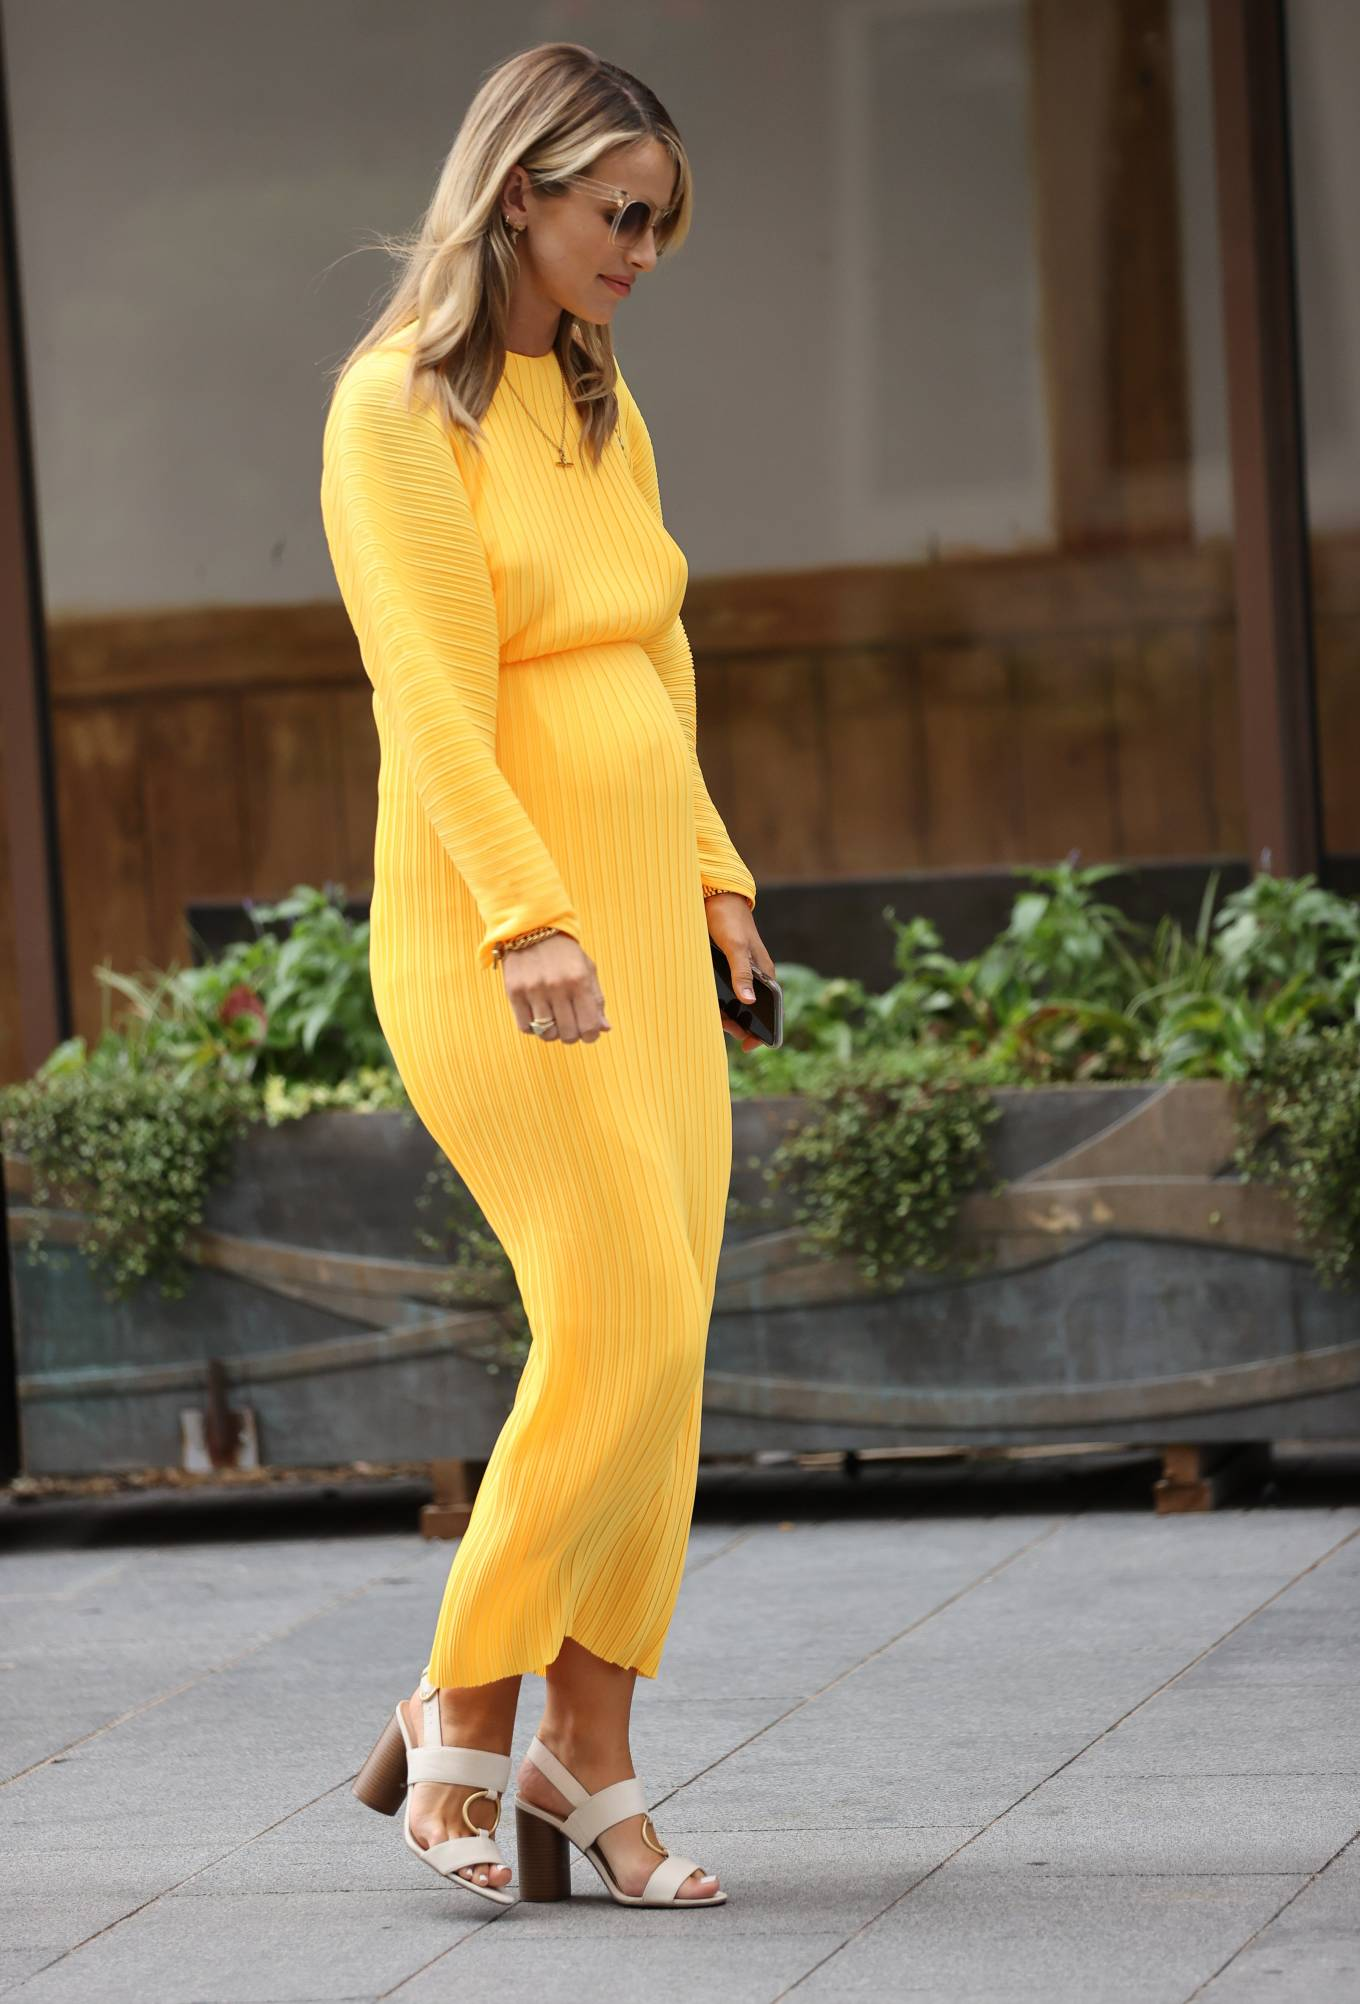 Vogue Williams 2020 : Vogue Williams in Yellow Dress – Out in London-02